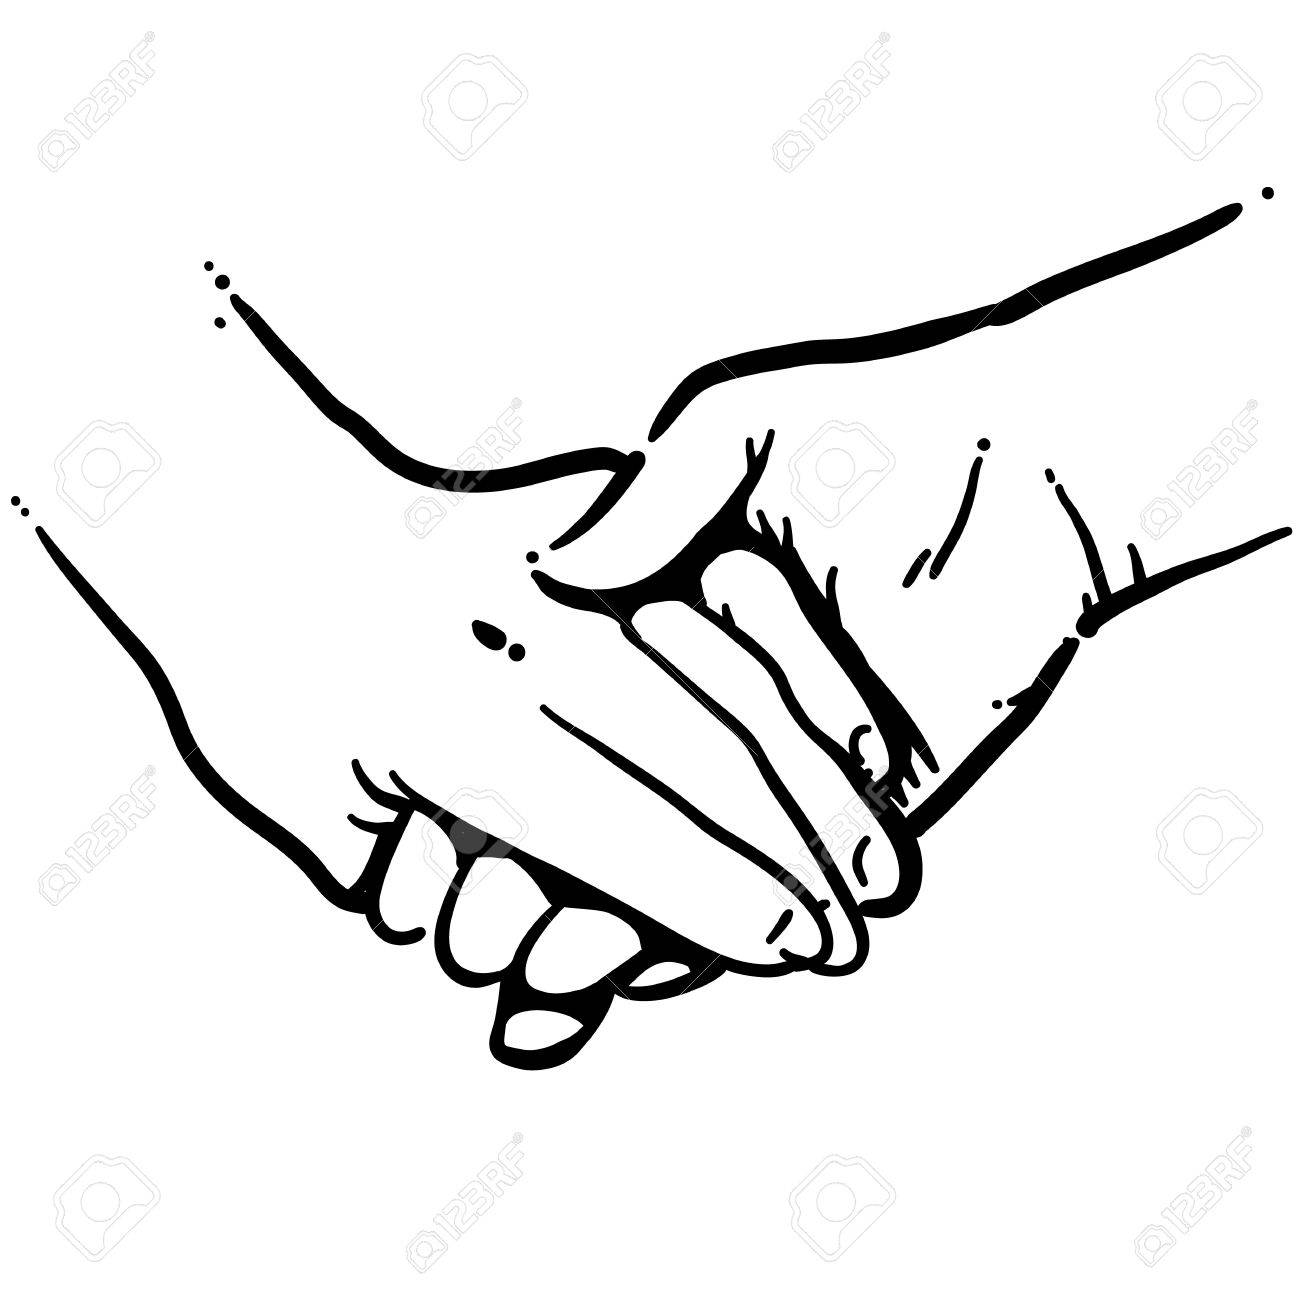 Holding hands black and white vector art stock vector 77613591